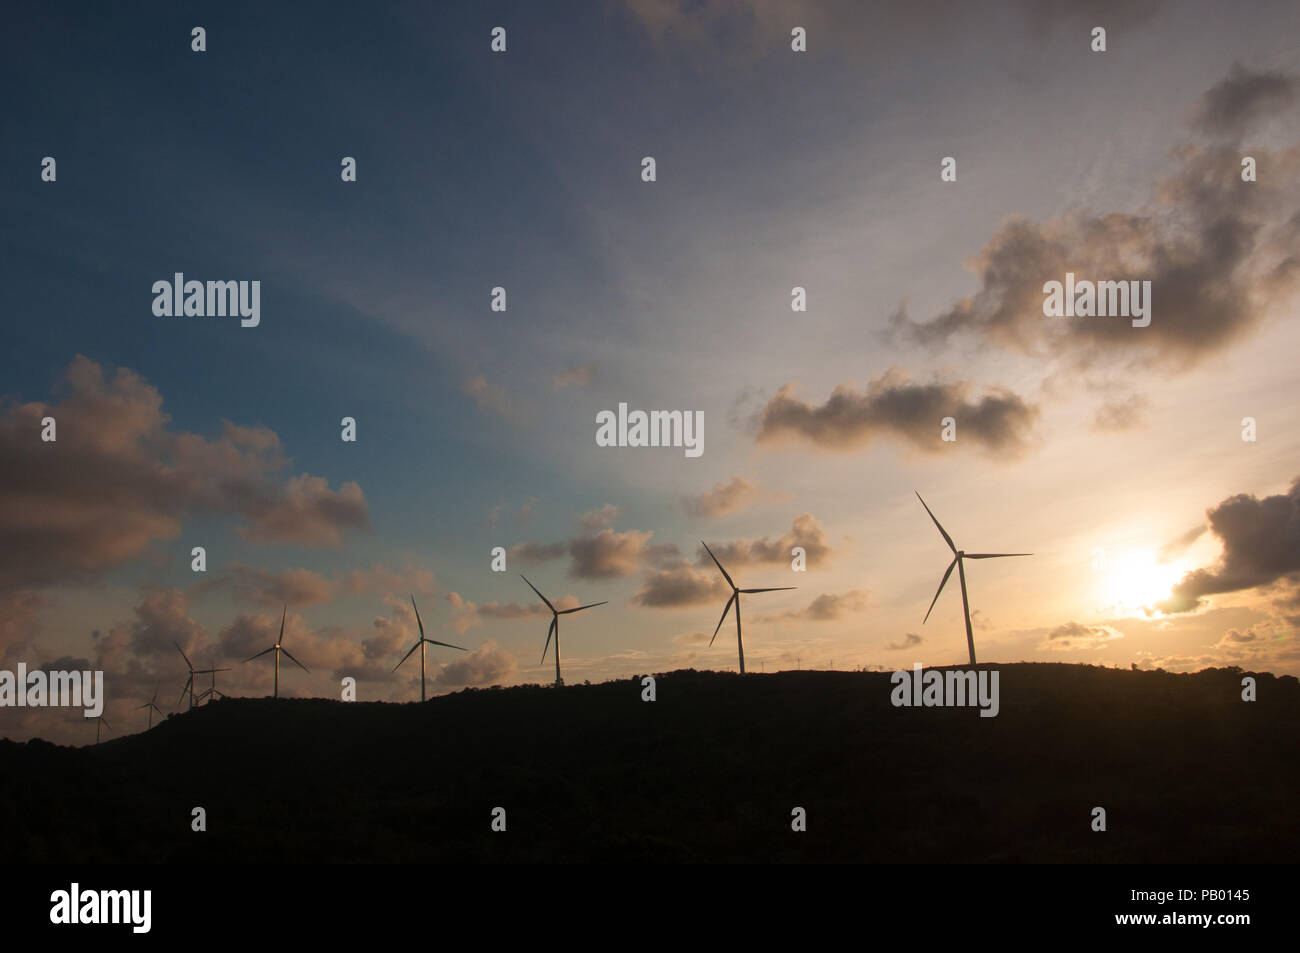 A line of wind turbines at the Sidrap Wind Farm site in Sidenreng Rappang, South Sulawesi, Indonesia - Stock Image